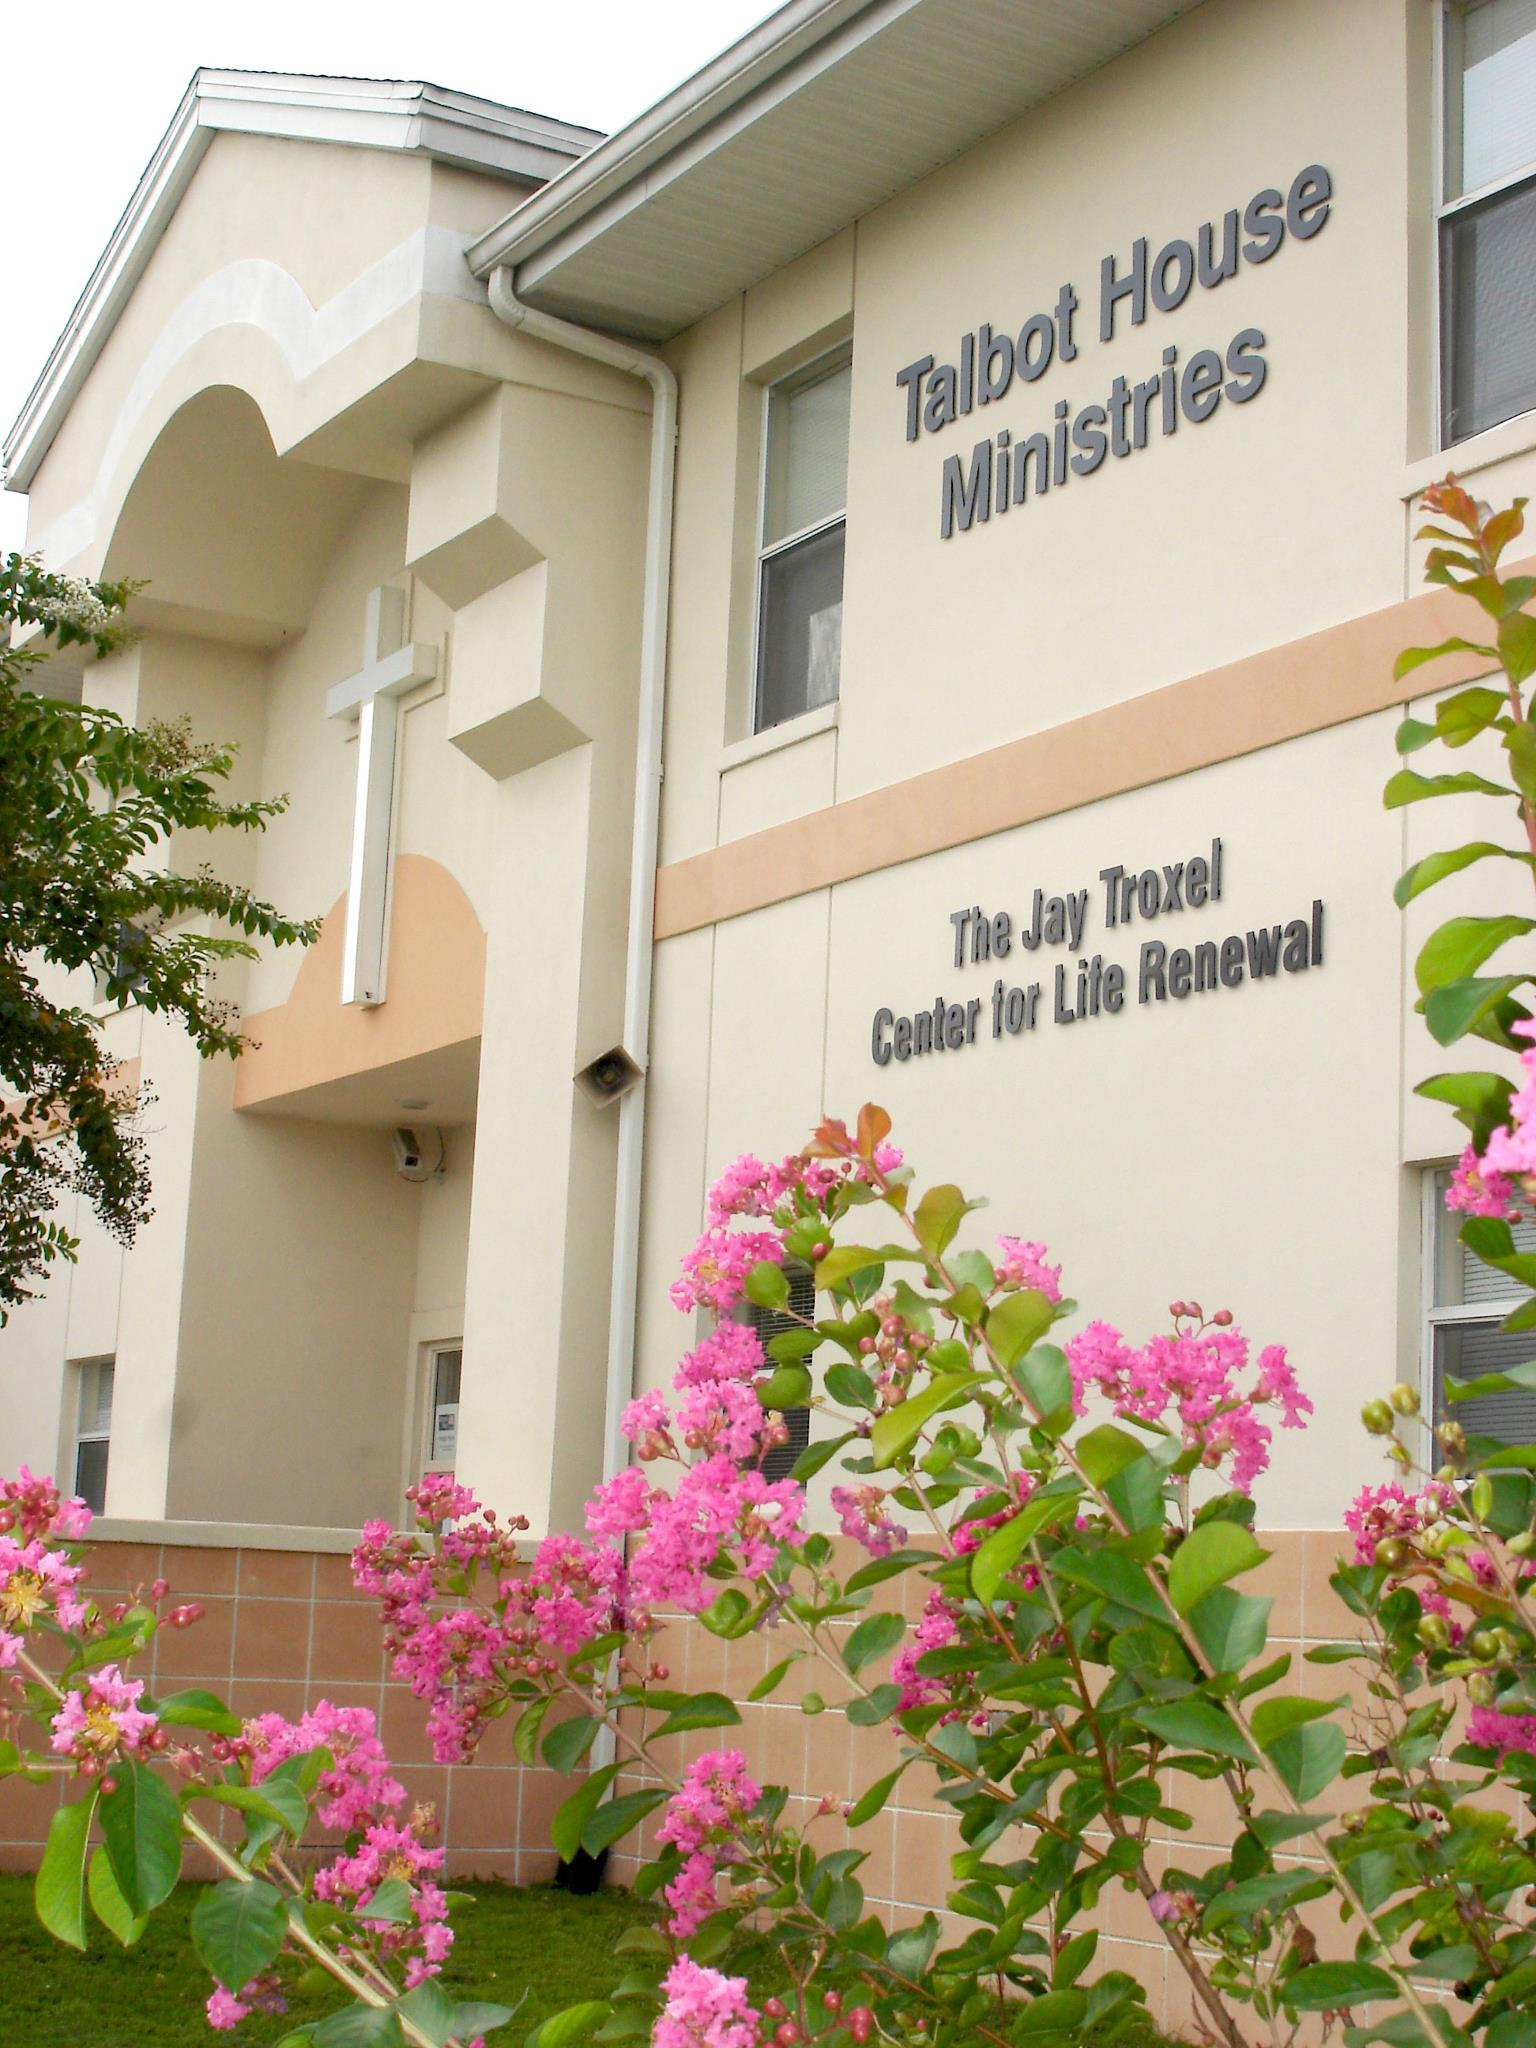 Talbot House Ministries Of Lakeland